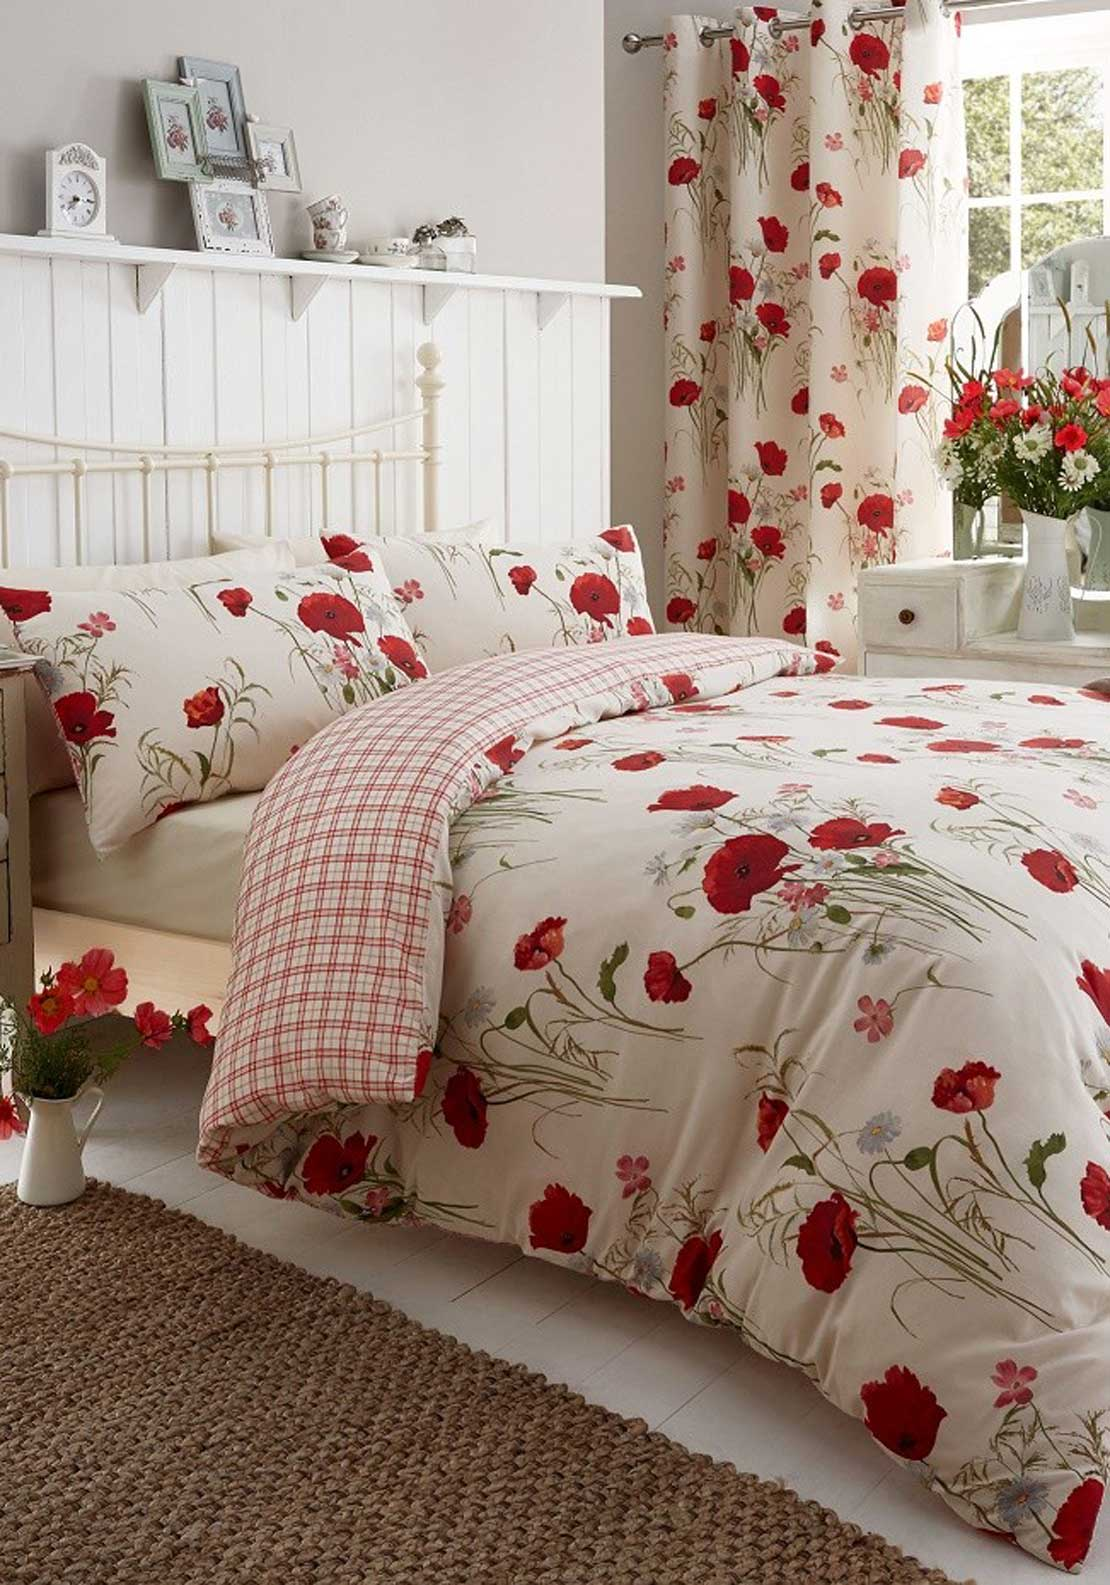 Catherine Lansfield Wild Poppies Fully Lined Ready Made Eyelet Header Curtains 66x72, Cream Multi